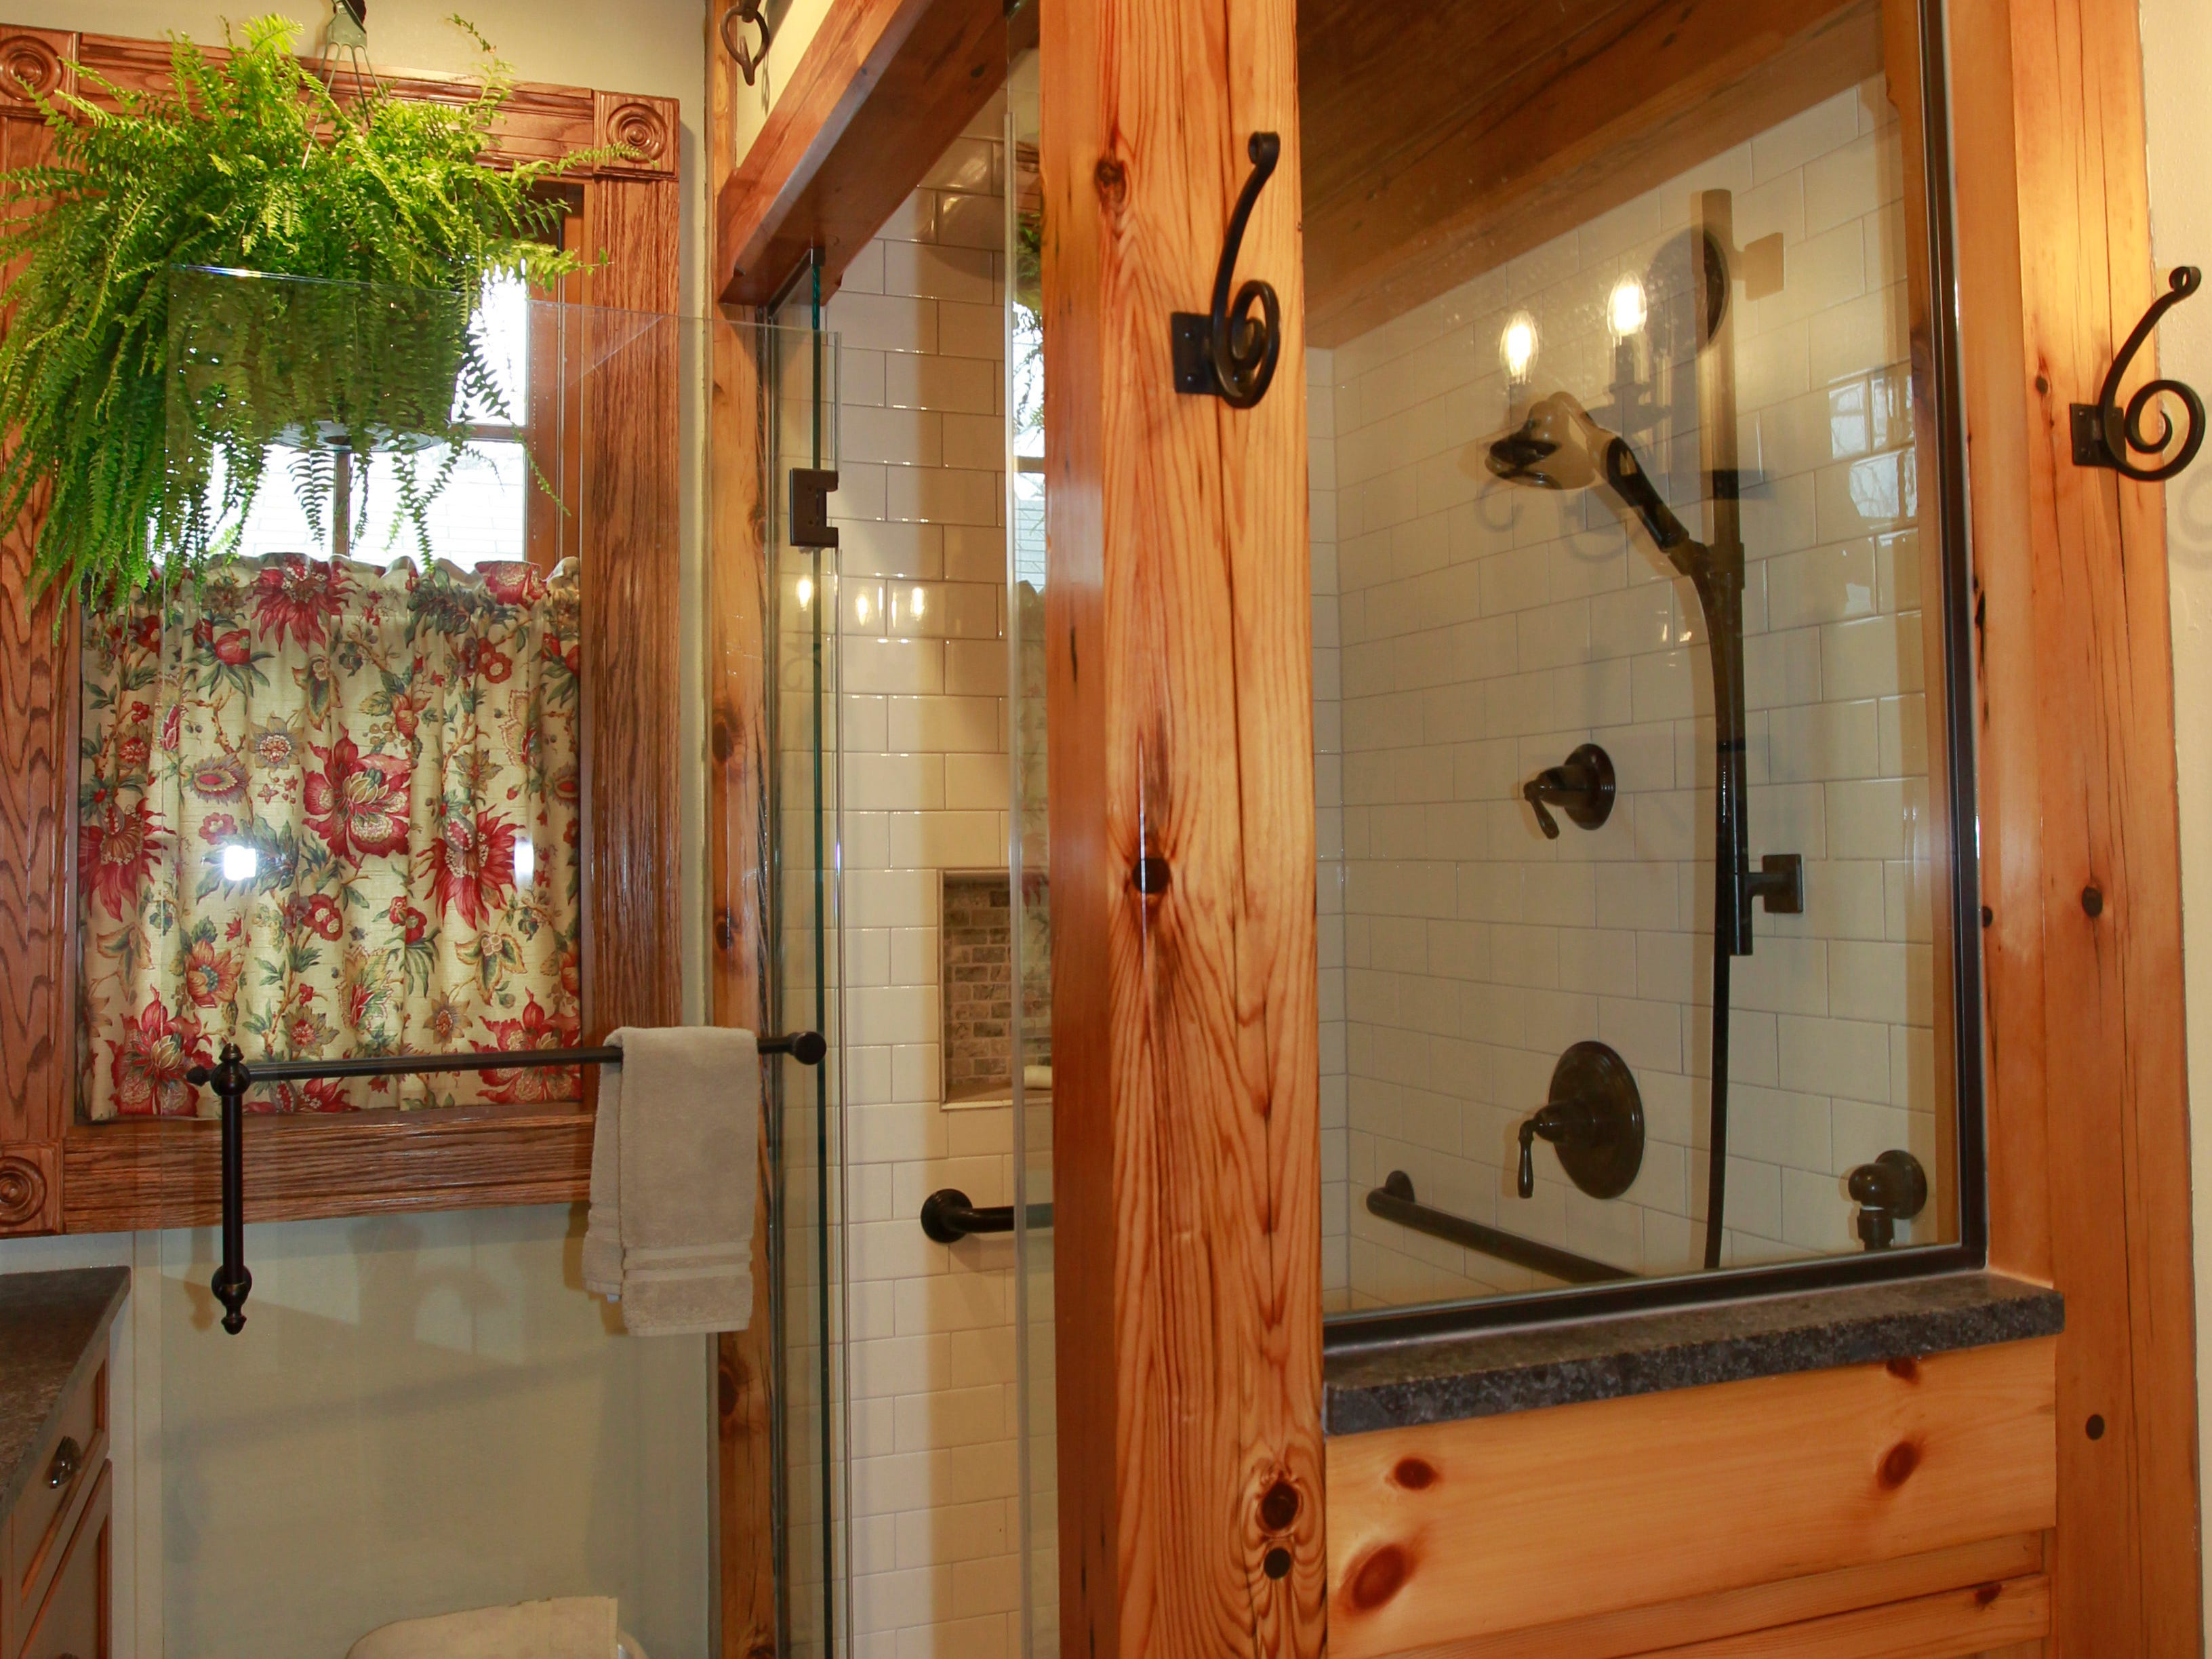 The downstairs bathroom features a pine barrel ceiling in the shower, and the floor is heated.